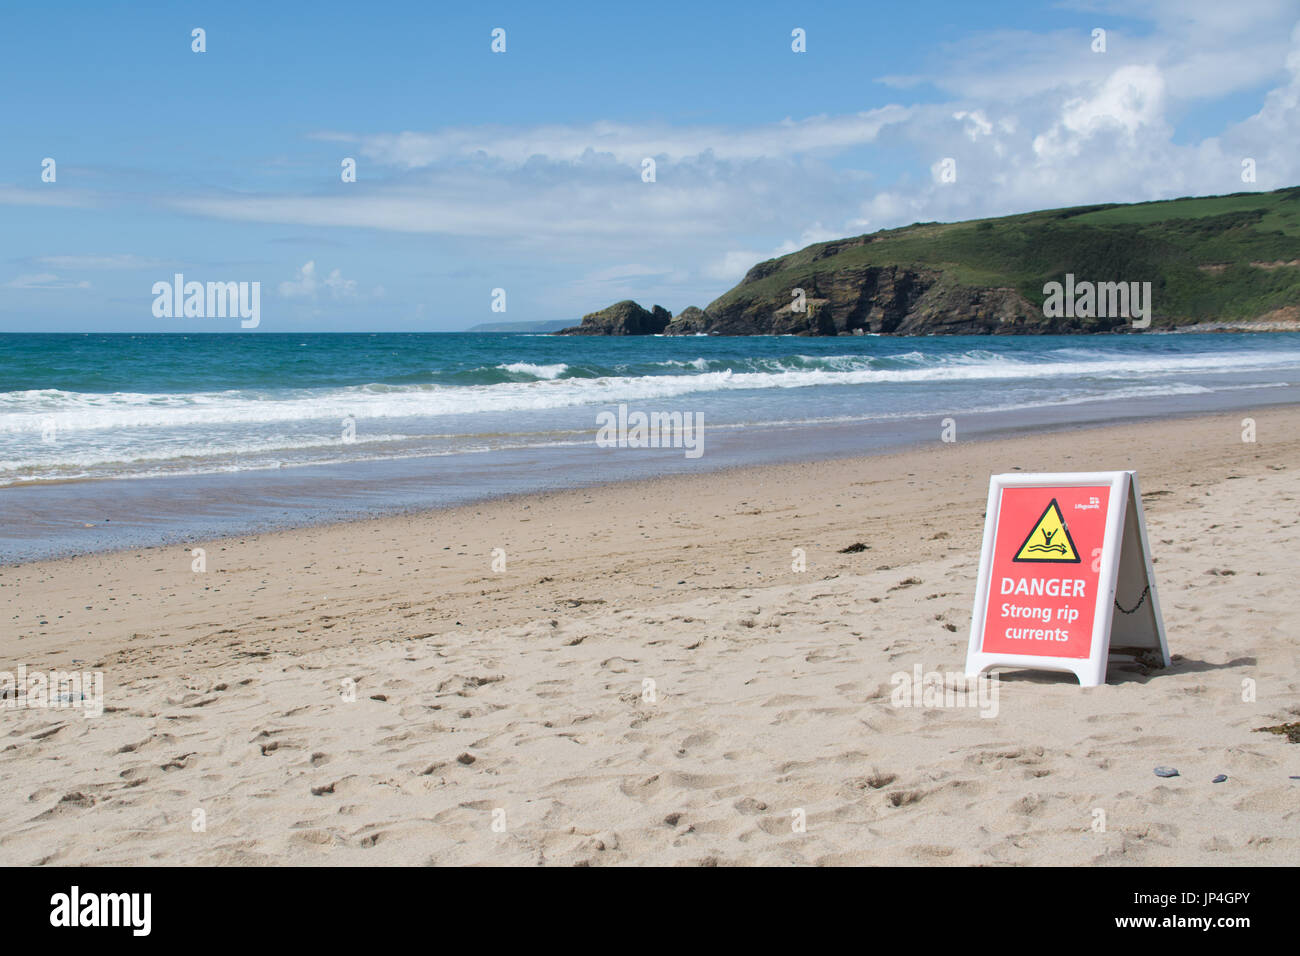 Les courants forts Danger sign on beach Photo Stock